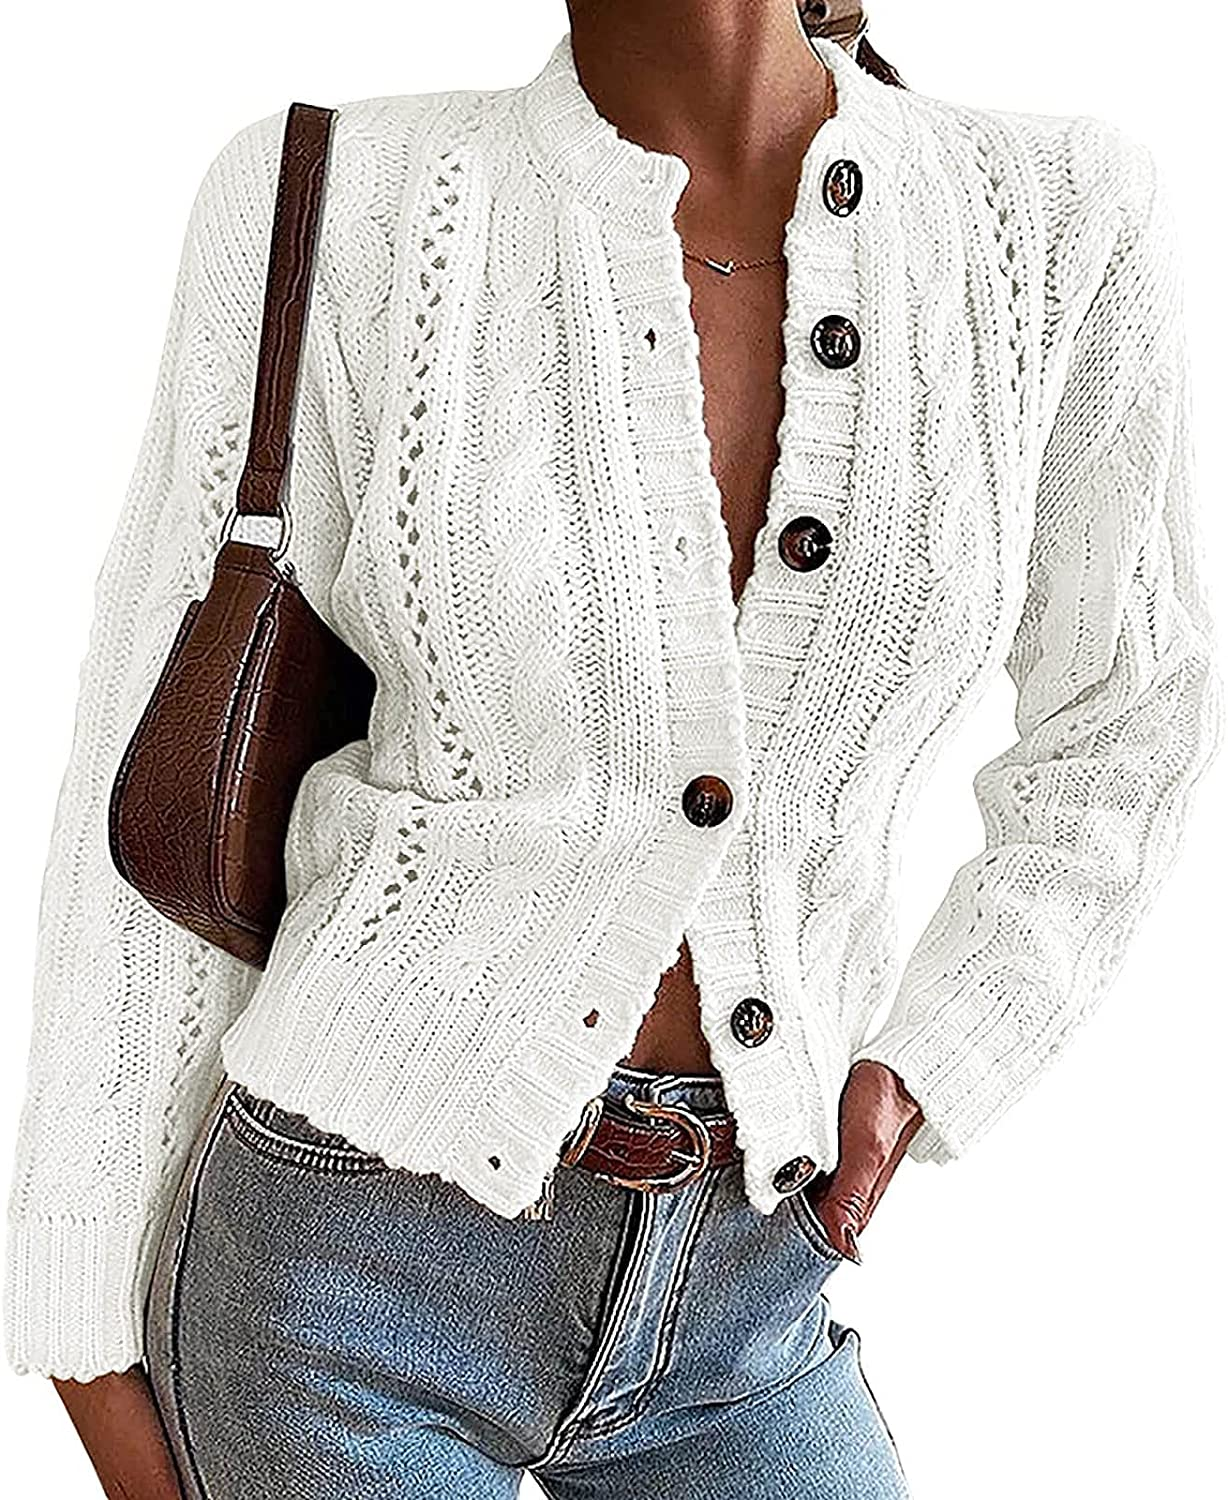 Fashion Cardigan for Women Casual Solid Color Button Sweater Jacket Long Sleeve Slim Open Front Coats